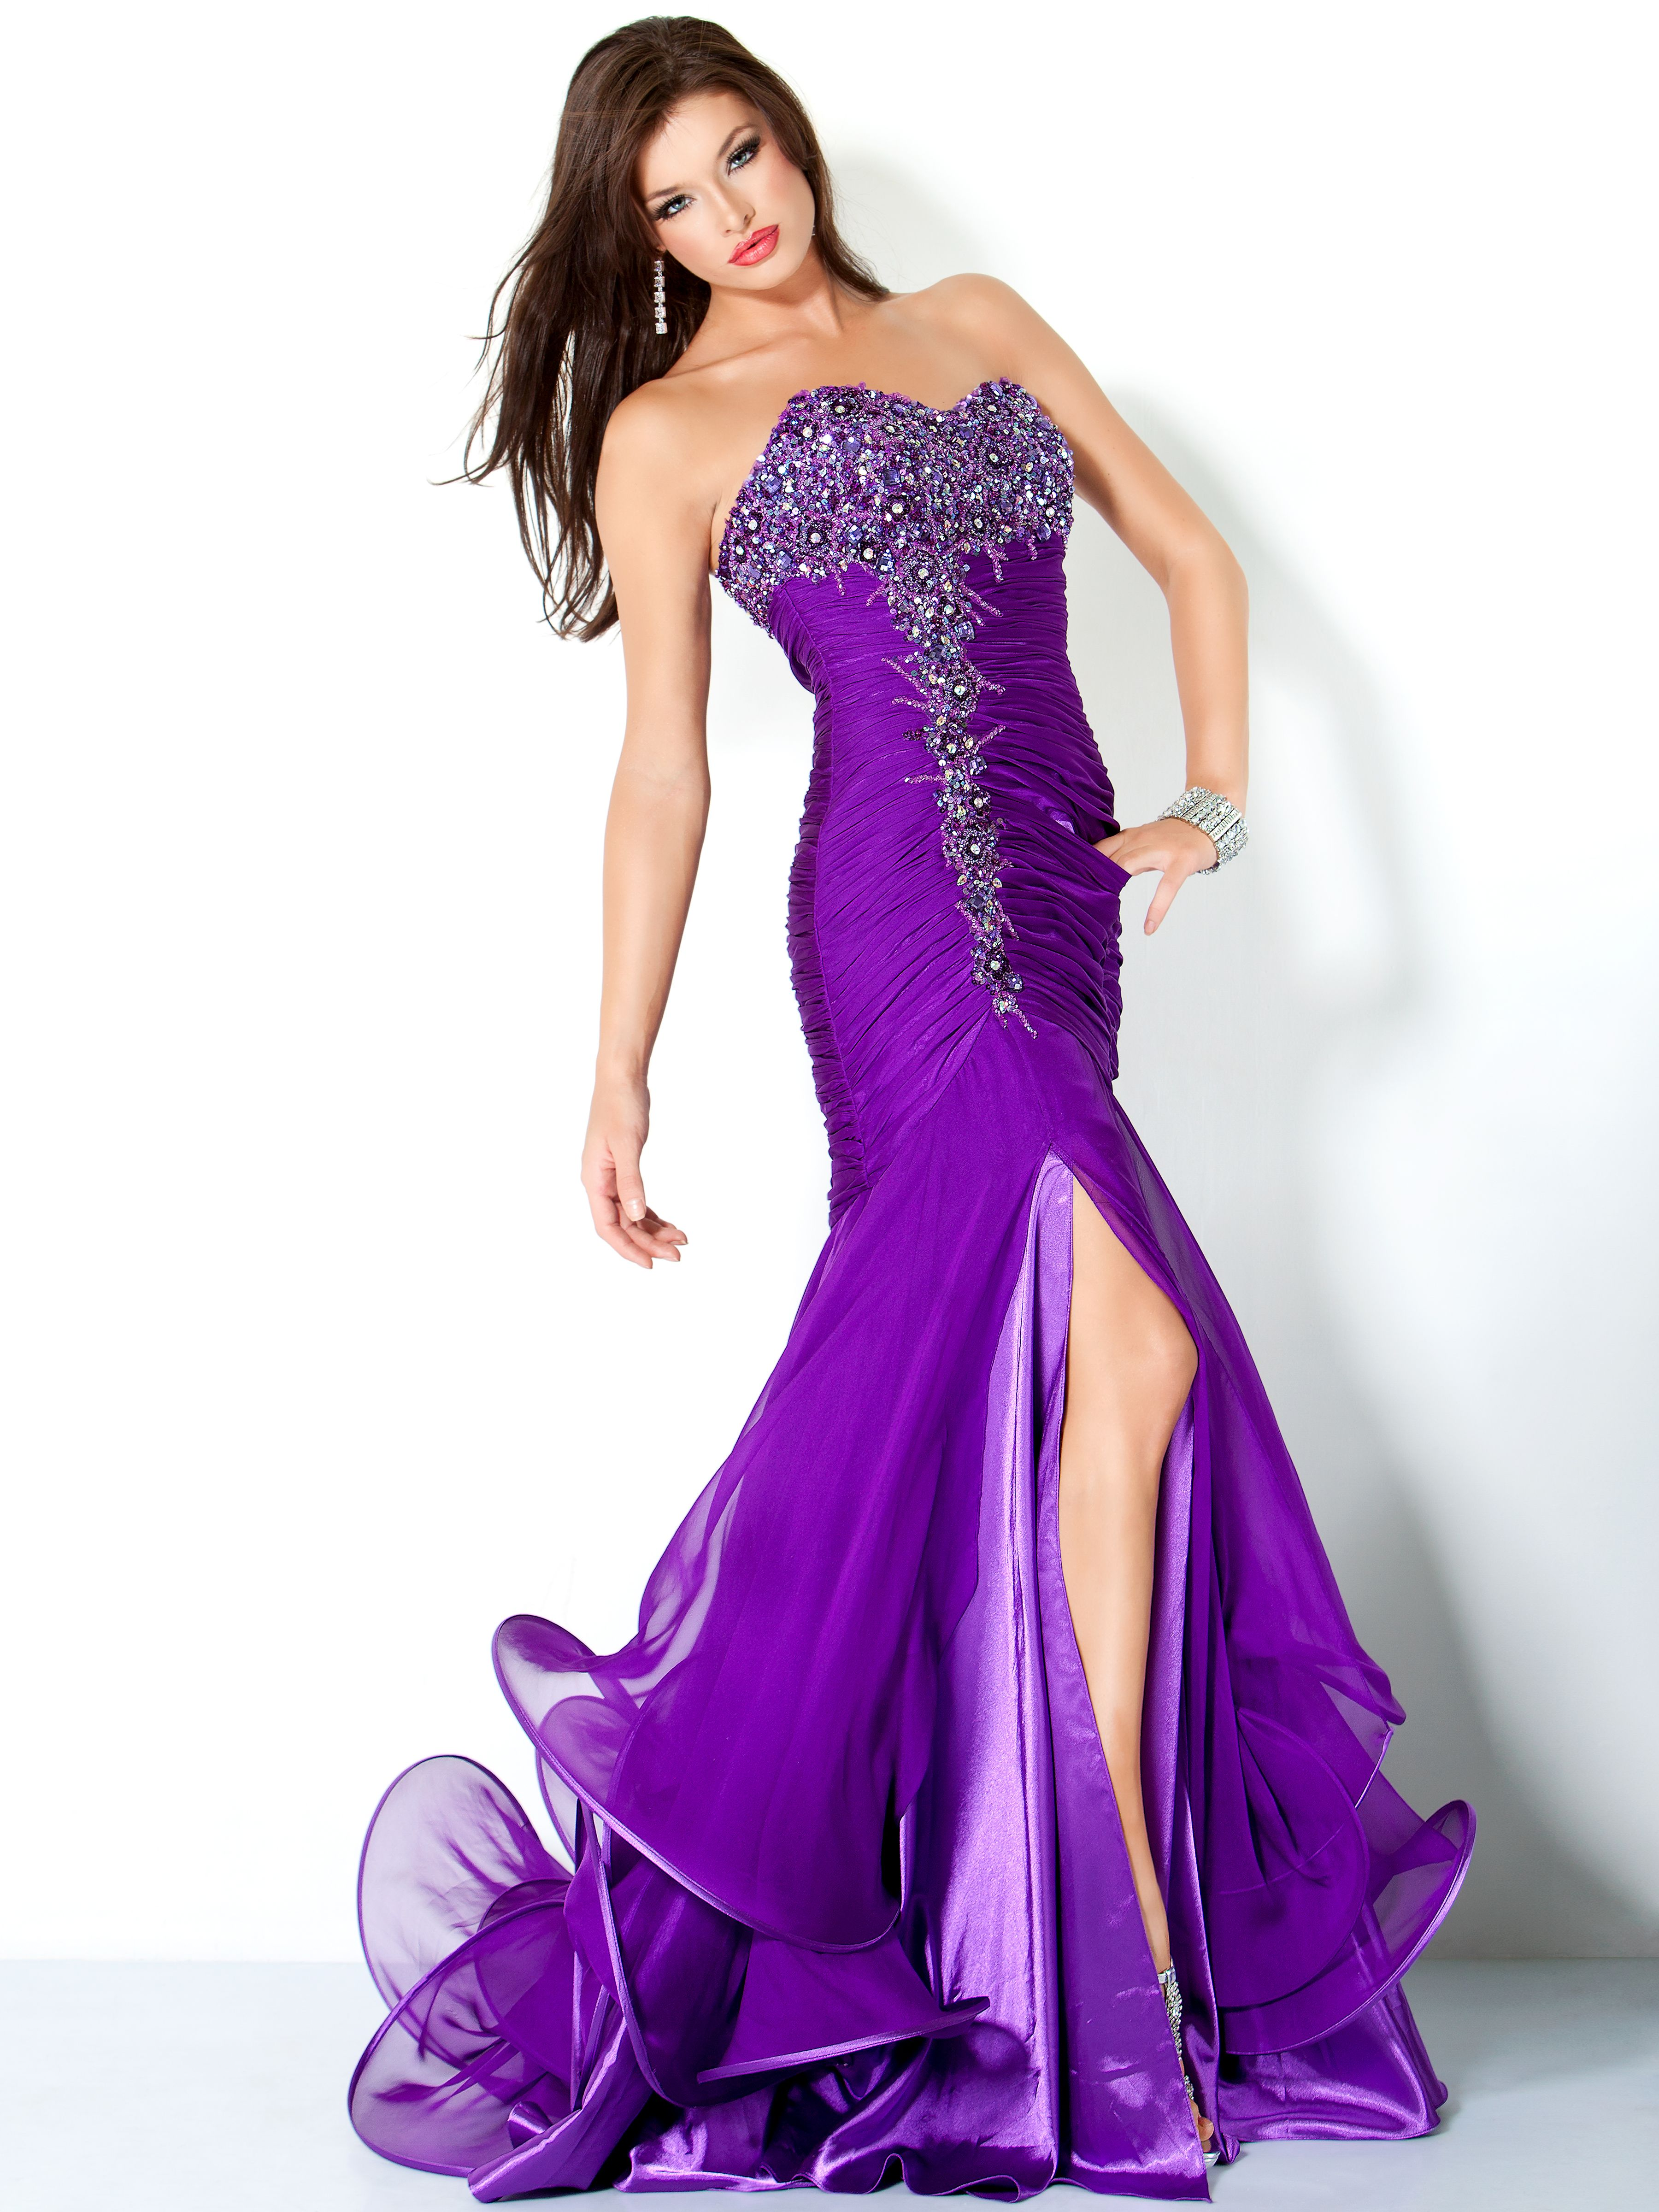 Long strapless purple mermaid evening dress with rhinestone accents ...